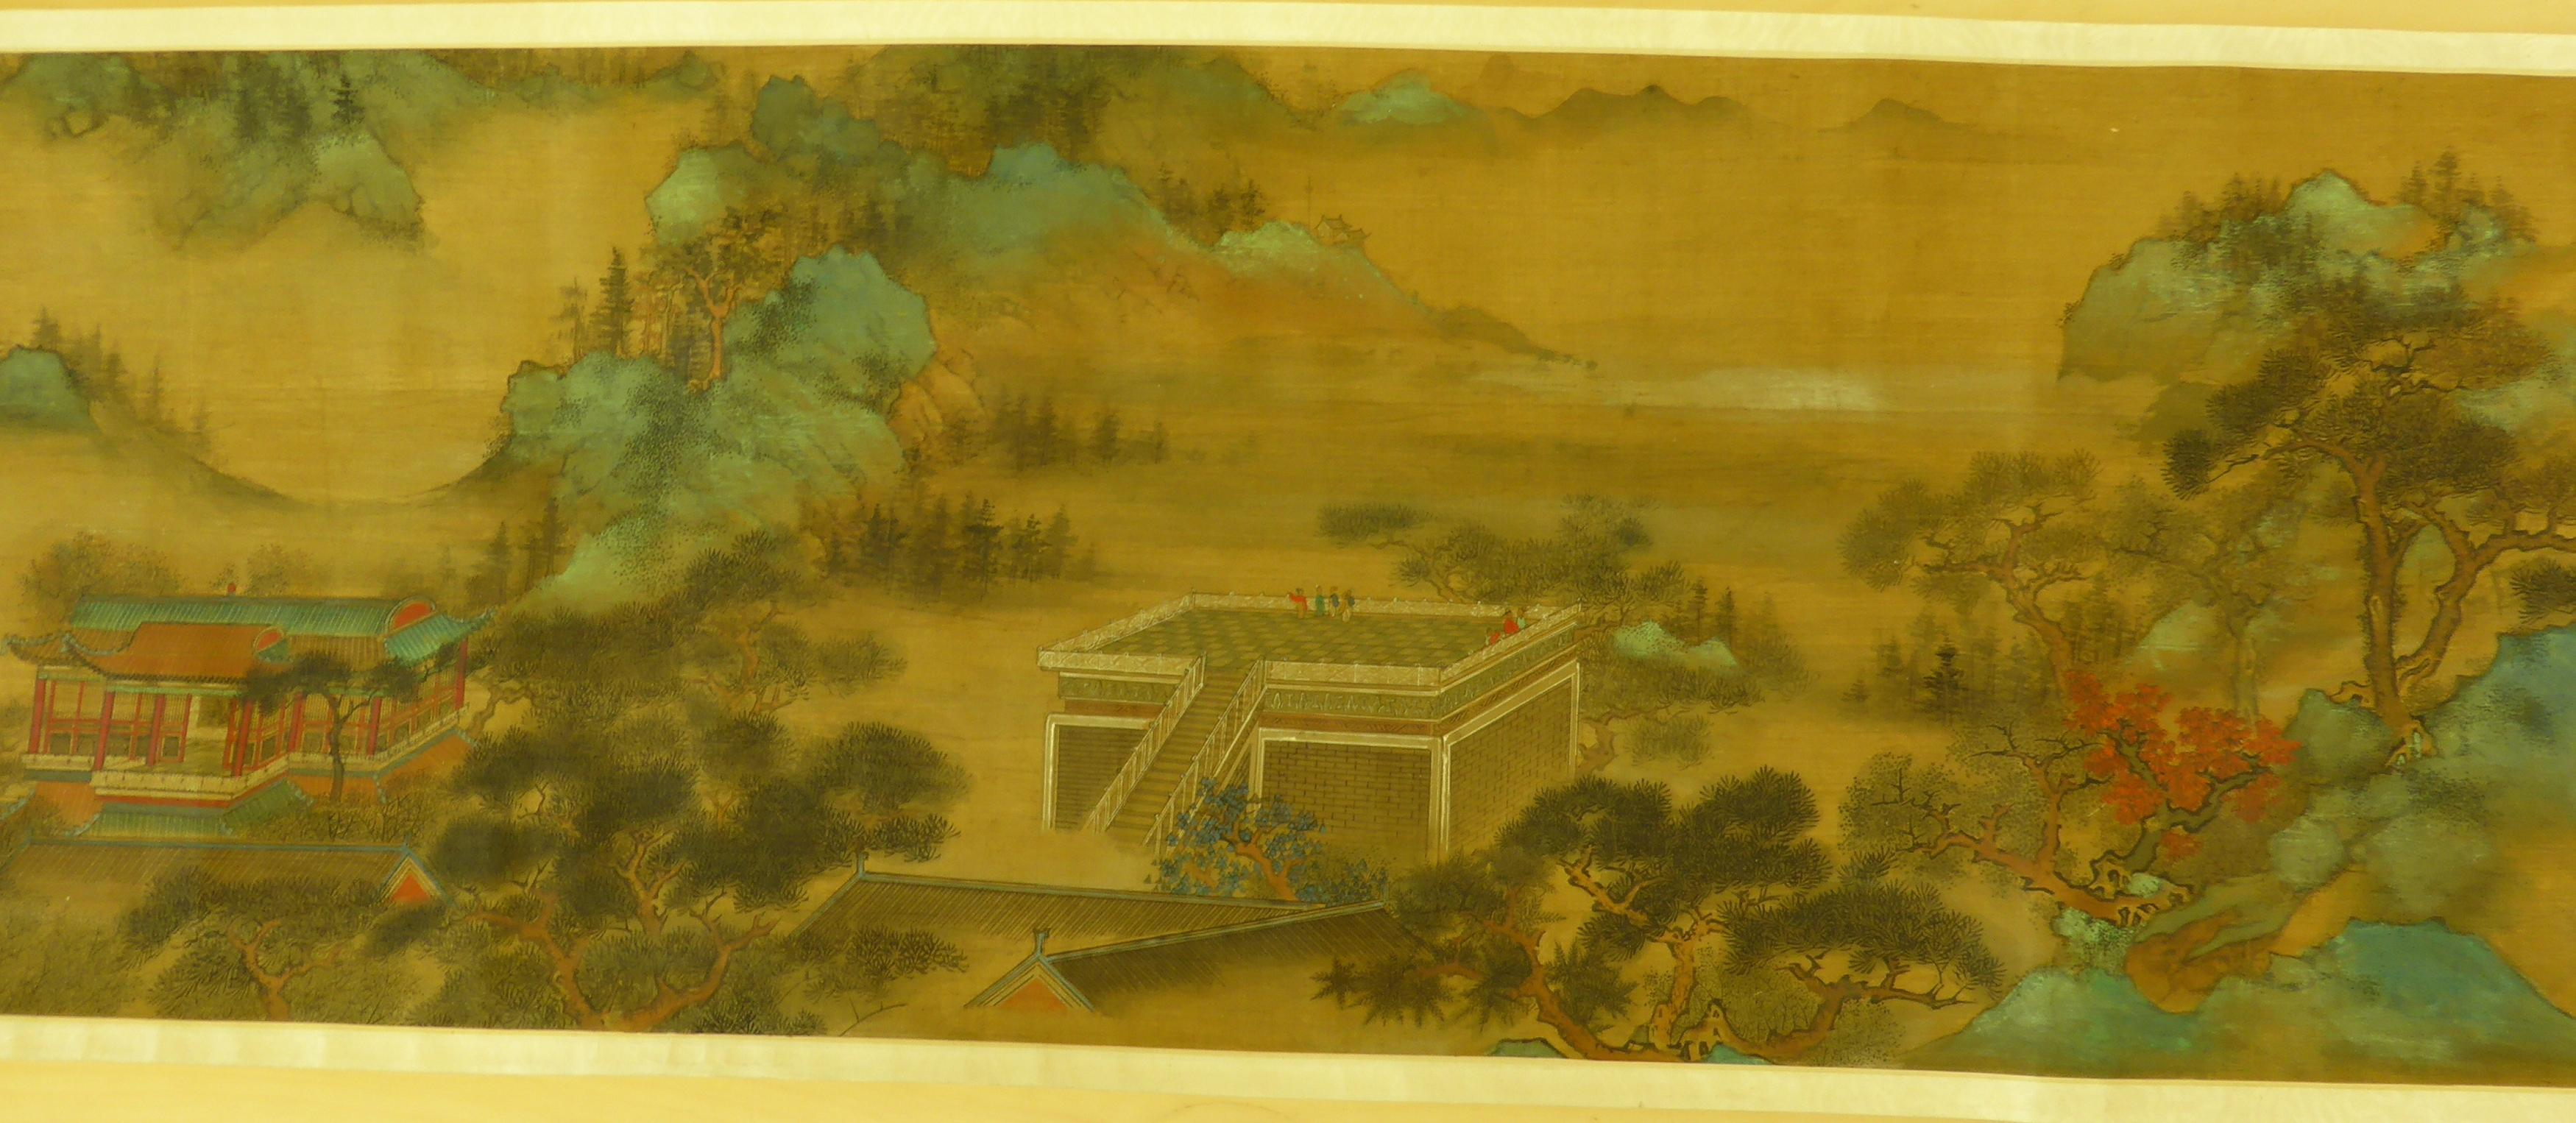 Lot 28 - WEN, ZHENGMING1470 - 1559THE MOUNTAINS OF THE IMMORTALS. Origin: China. Date: 19th-20th c. Maker/